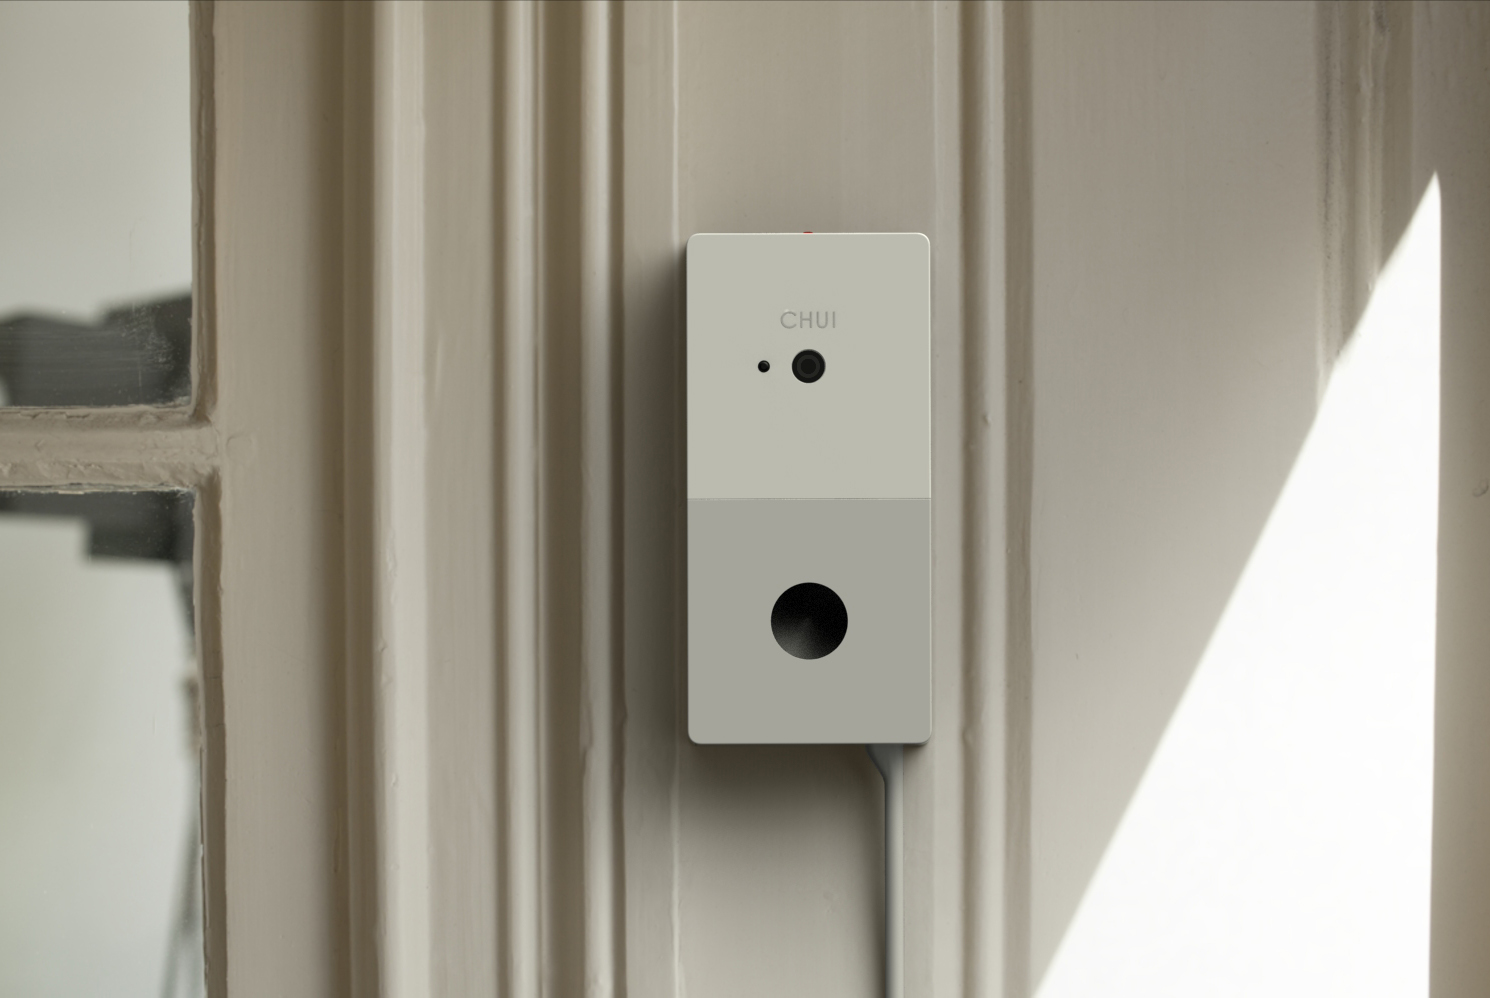 Chui The Facial Recognition Doorbell My Smart Home